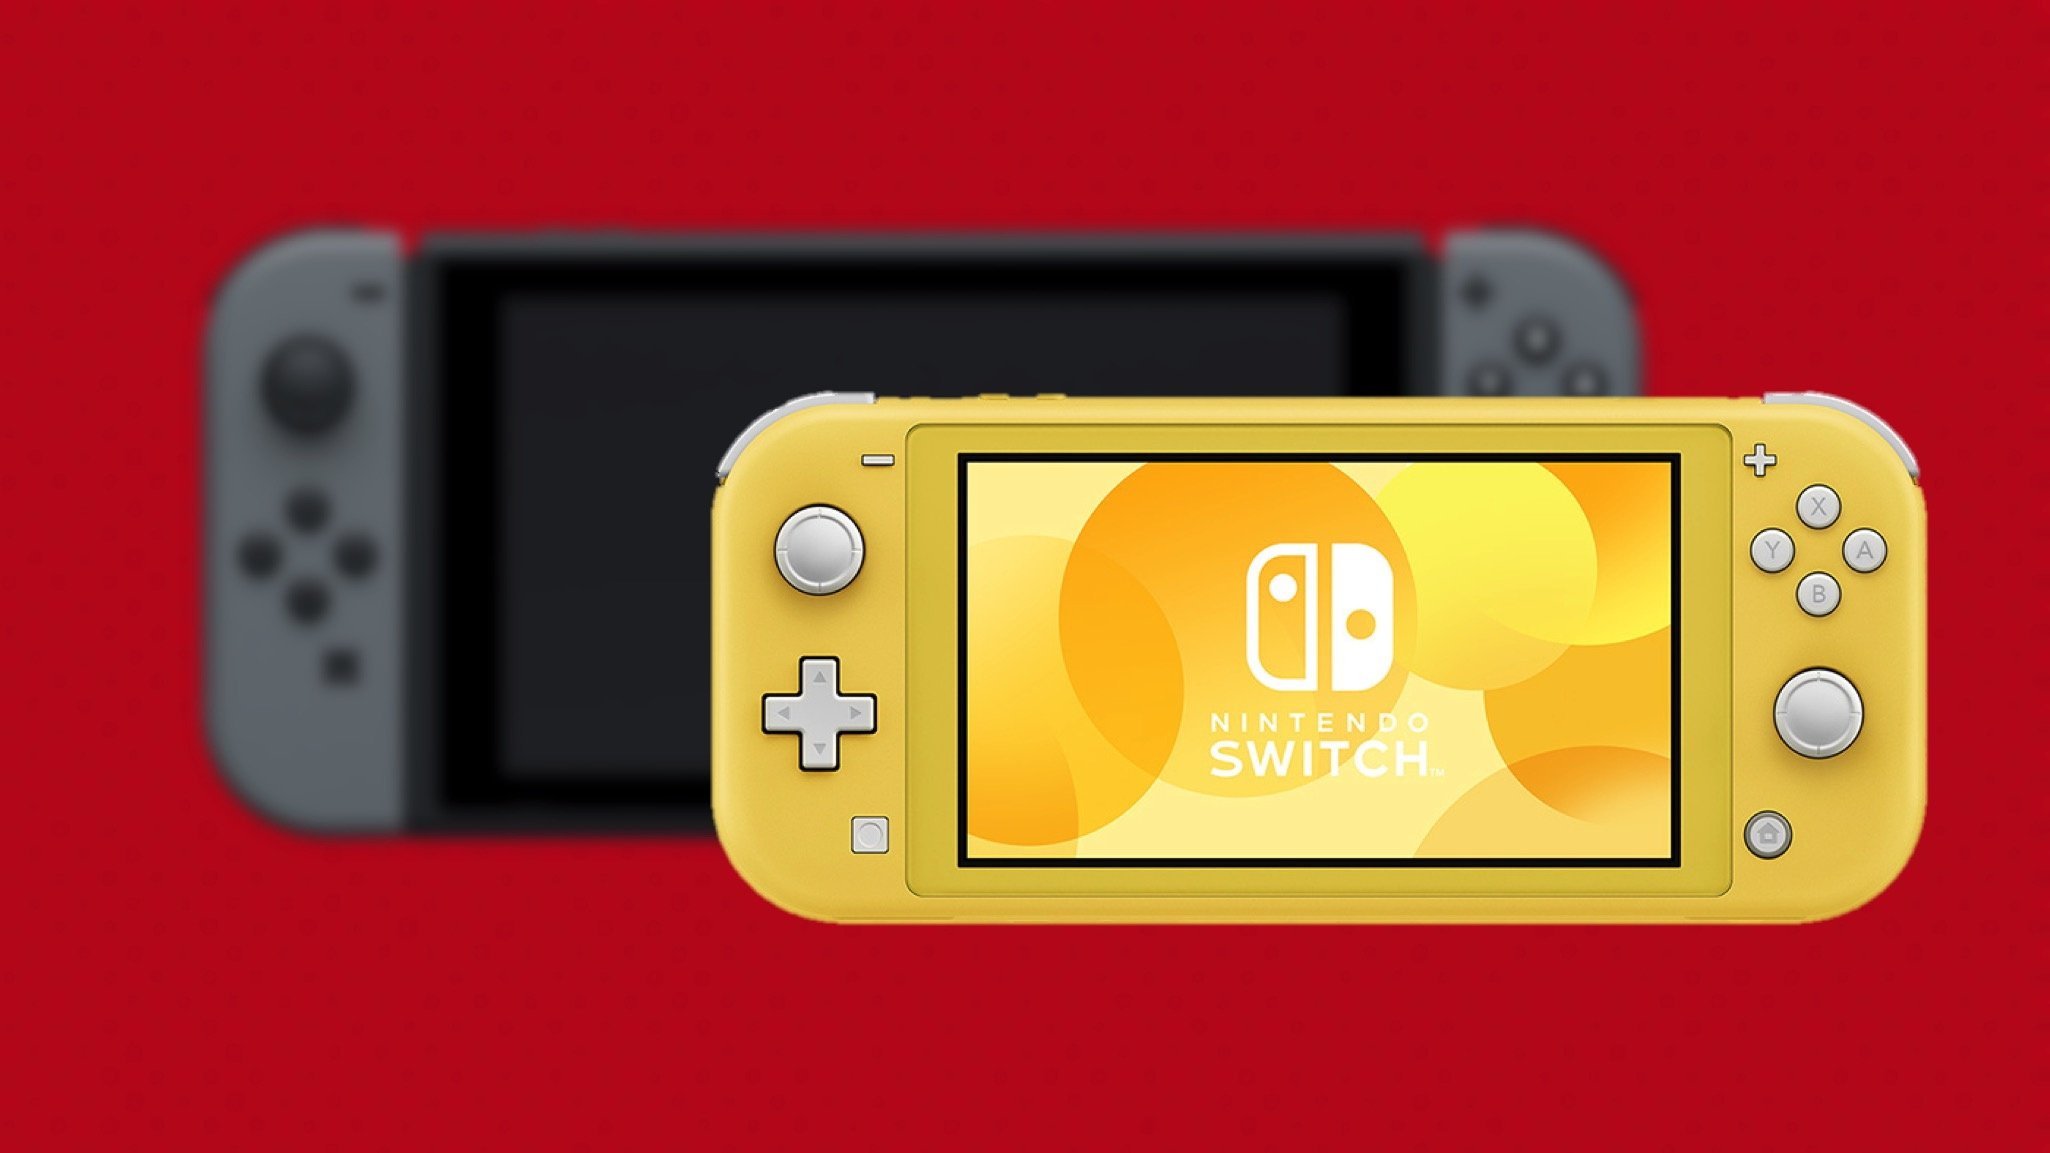 Nintendo Switch Lite brings in more gamers